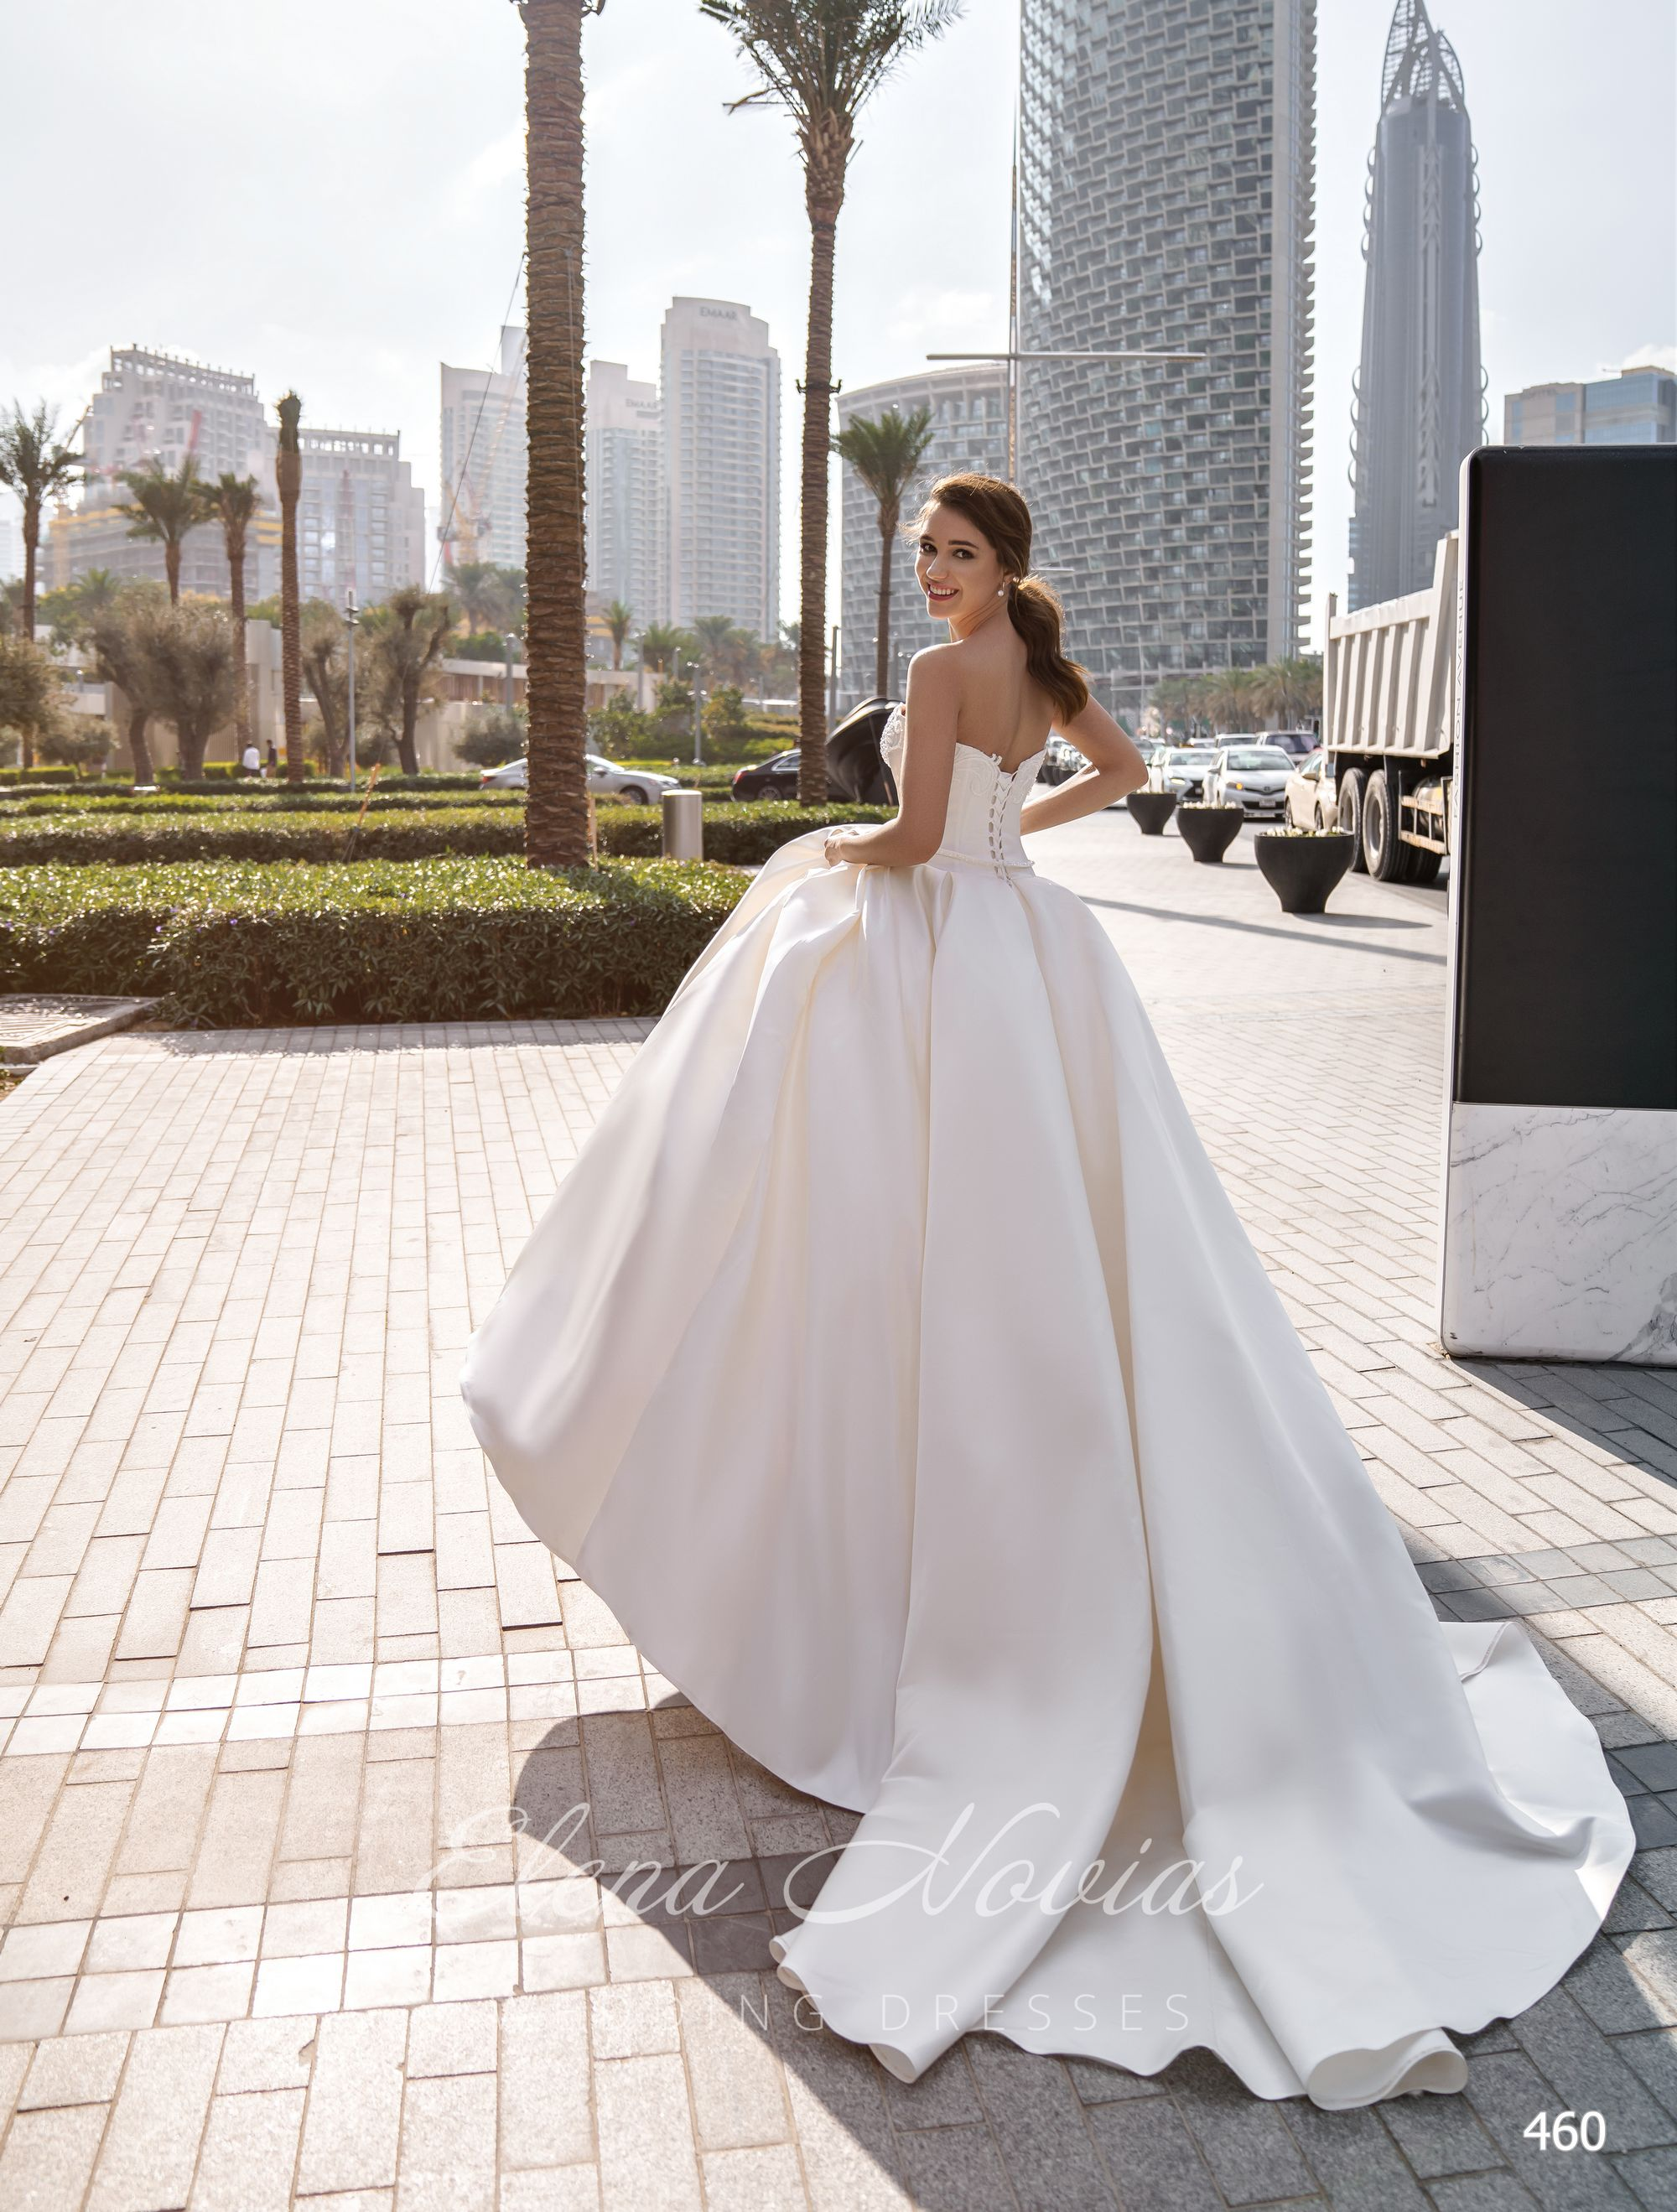 Wedding dresses 460 2